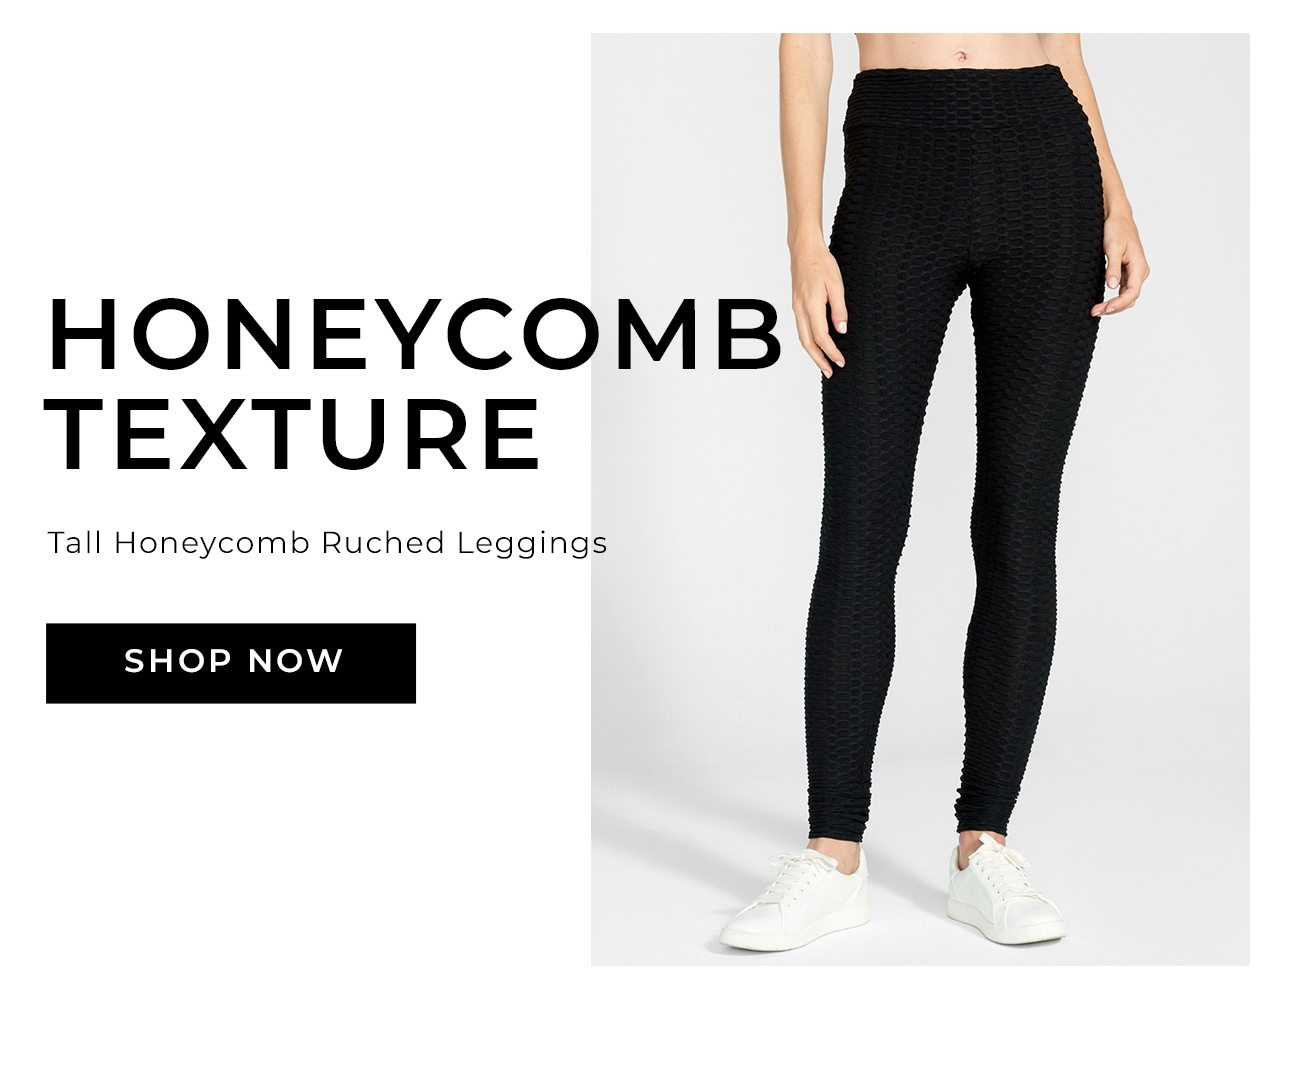 Honeycomb Texture Tall Honeycomb Ruched Leggings